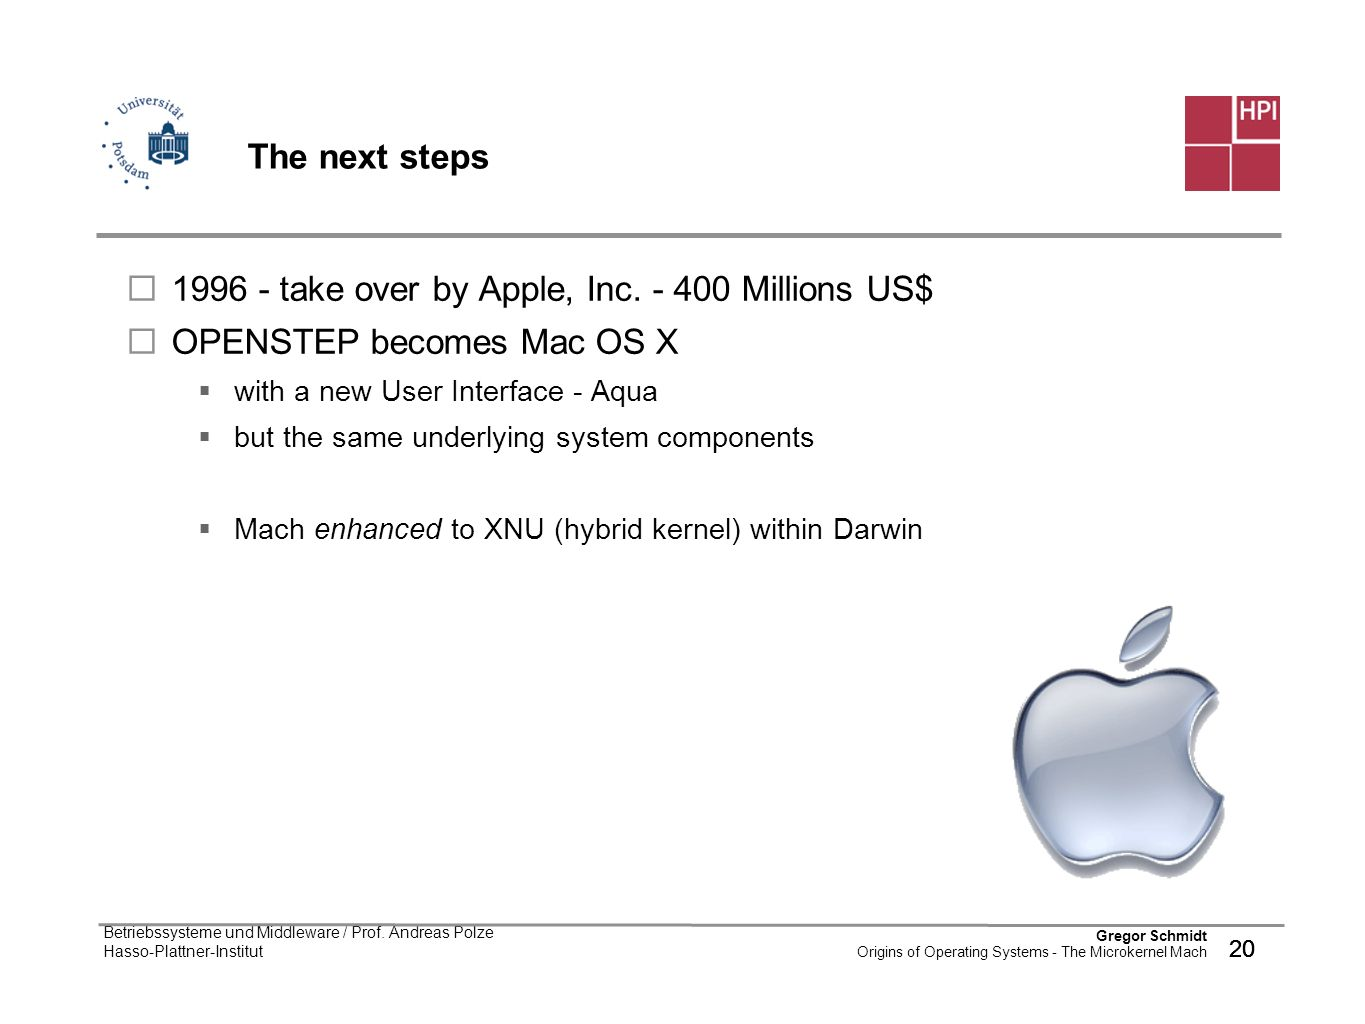 1996 - take over by Apple, Inc. - 400 Millions US$